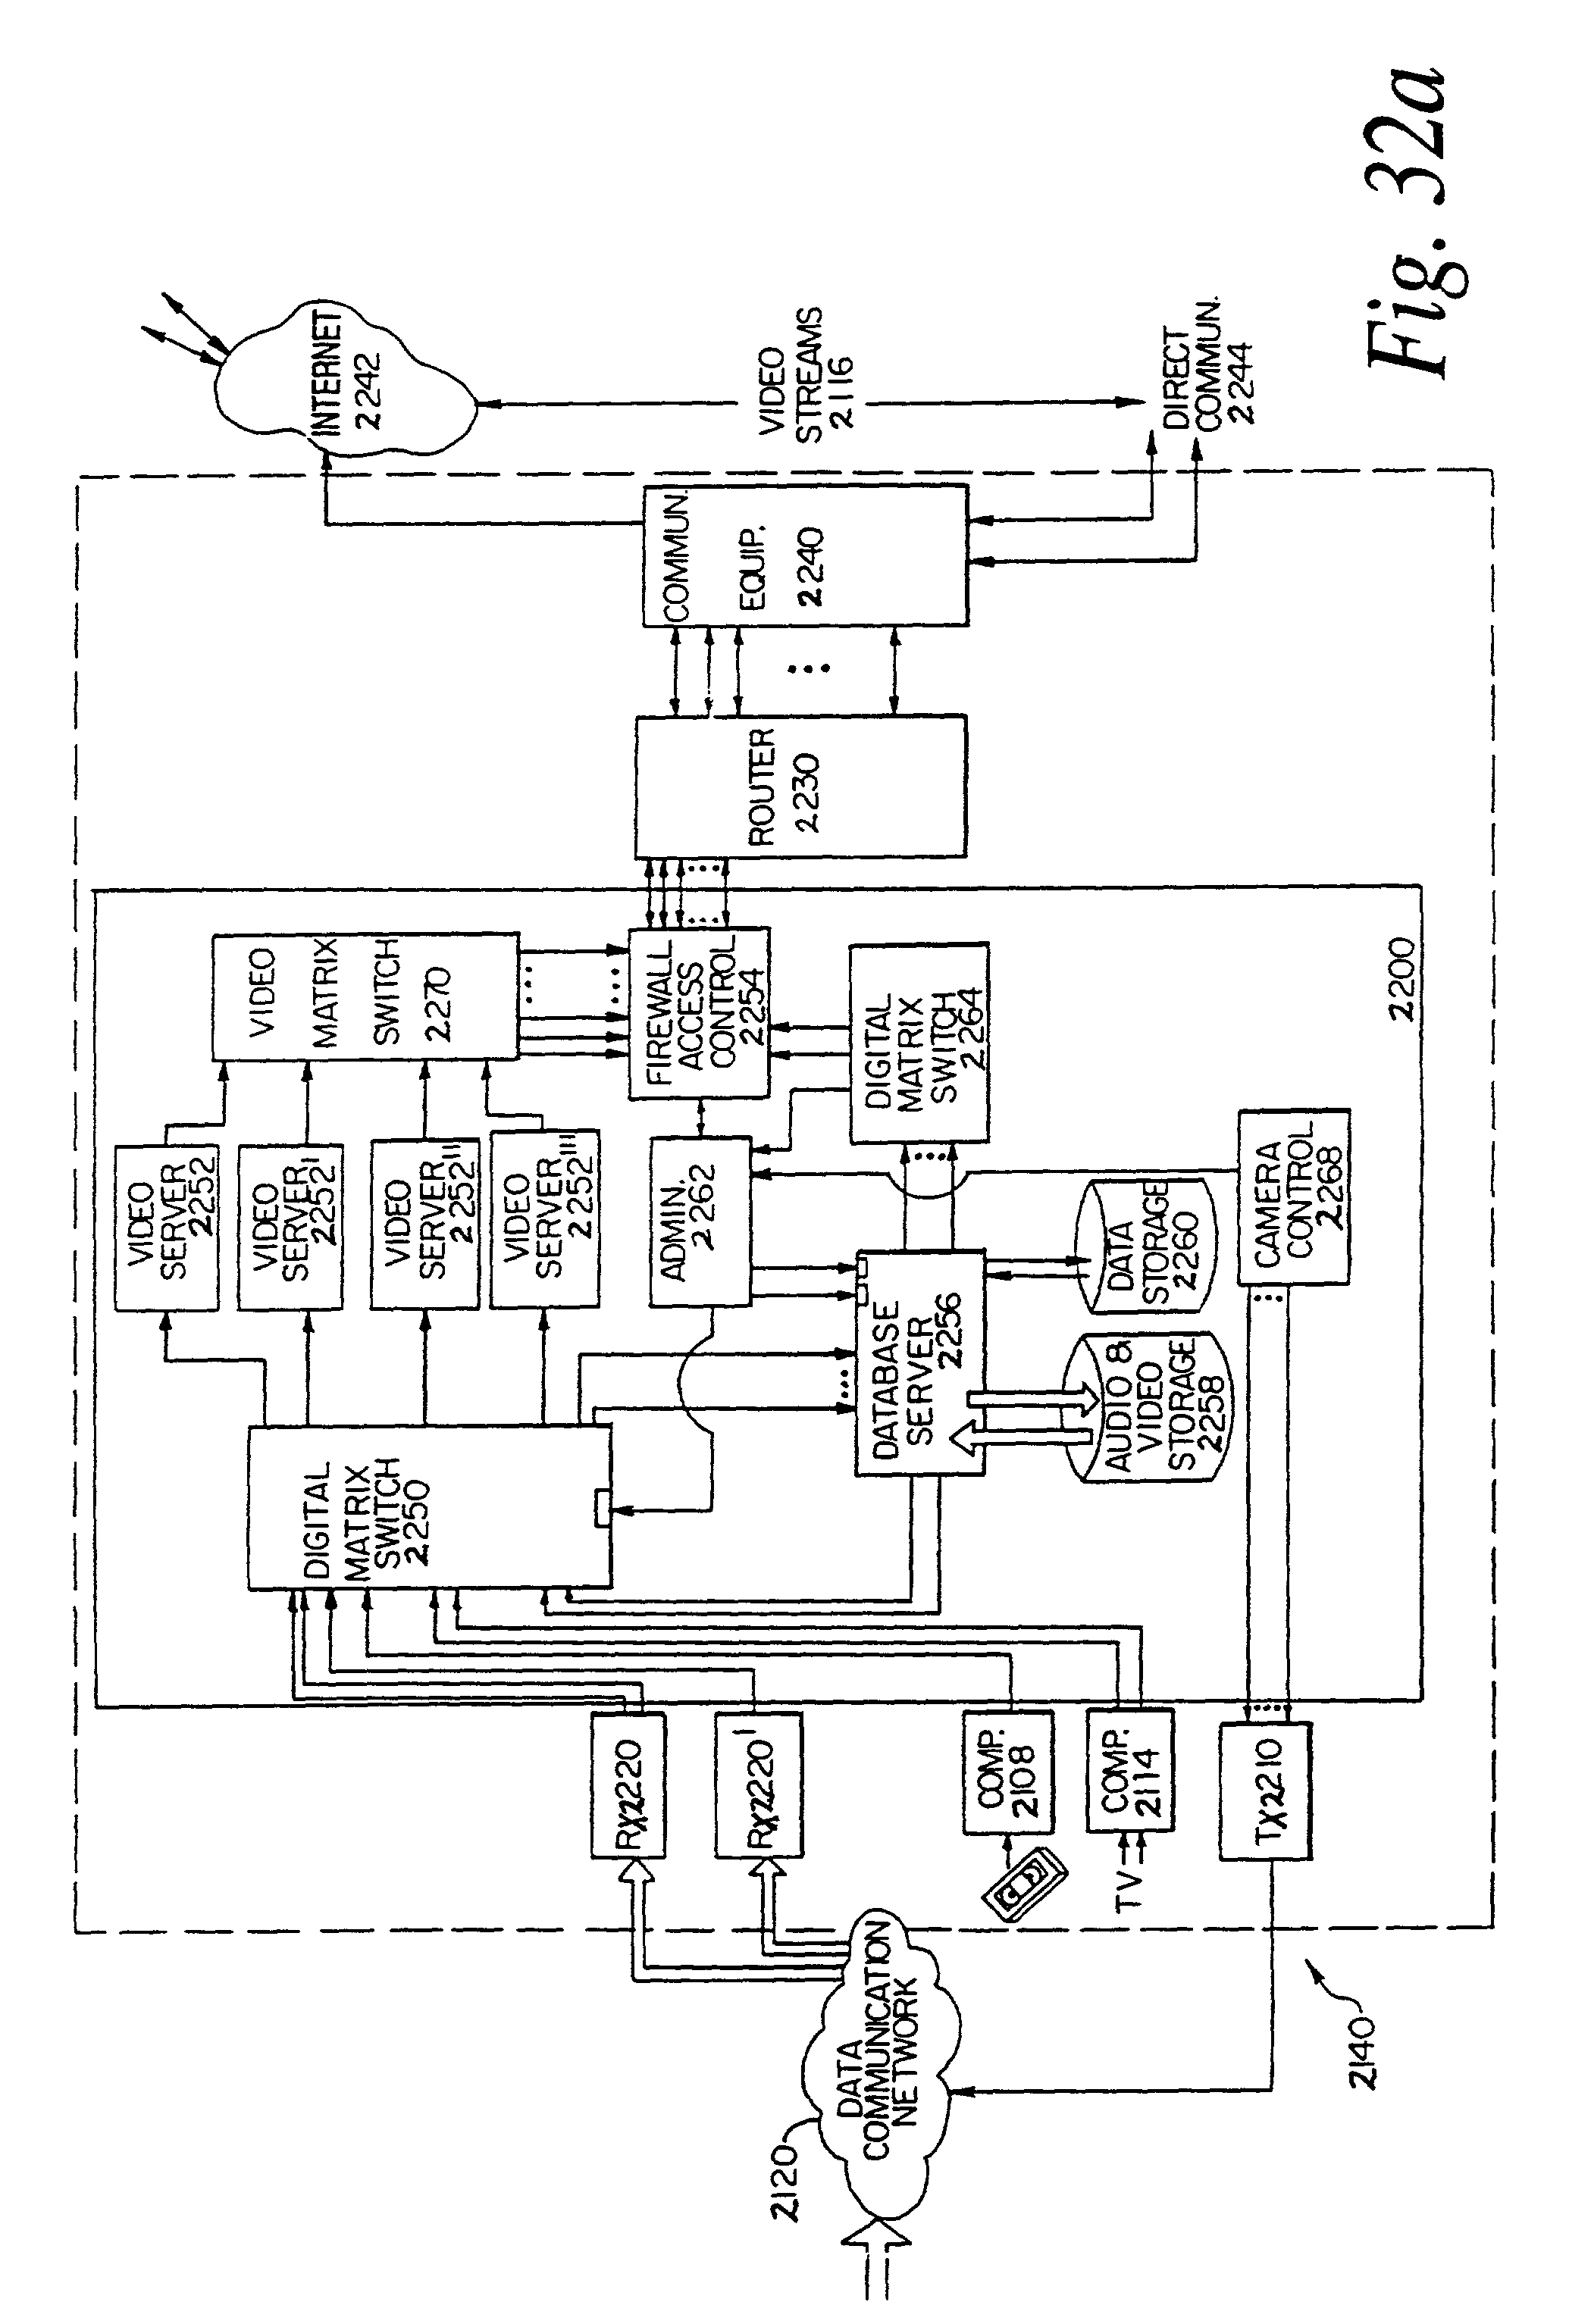 Patent Us 7849393 B1 Catv Contribution Network Definition And Diagram 0 Petitions